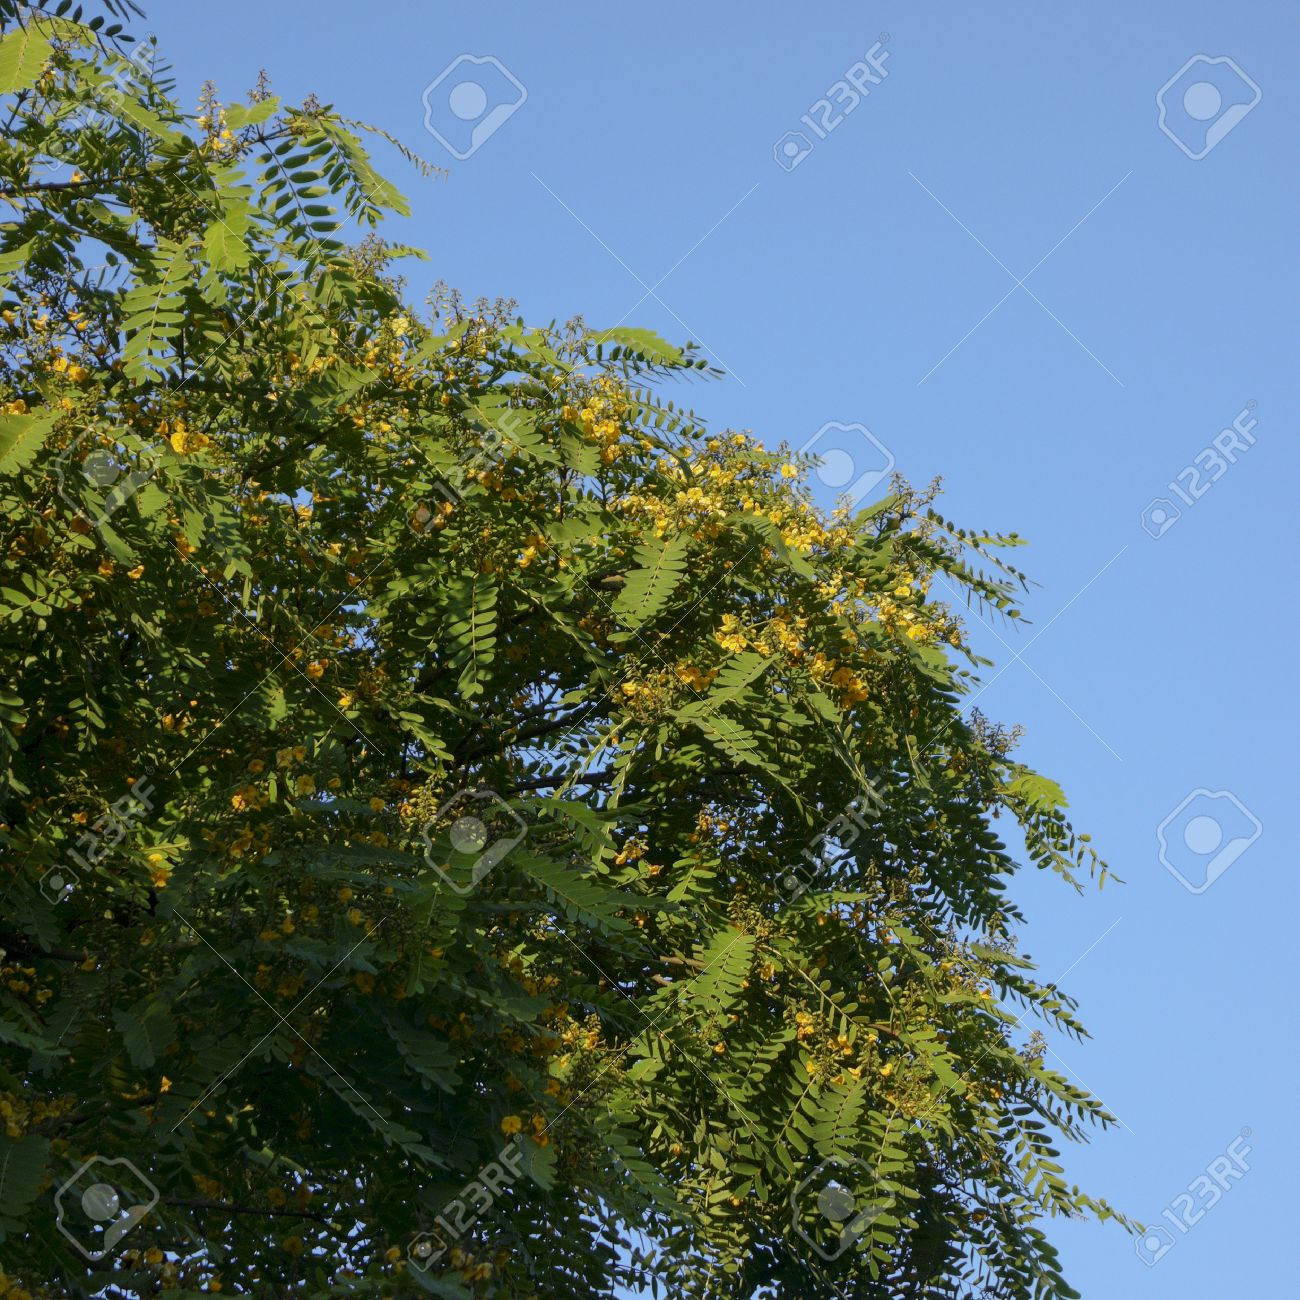 Southern California Acacia Tree Crown With Yellow Flowers Stock